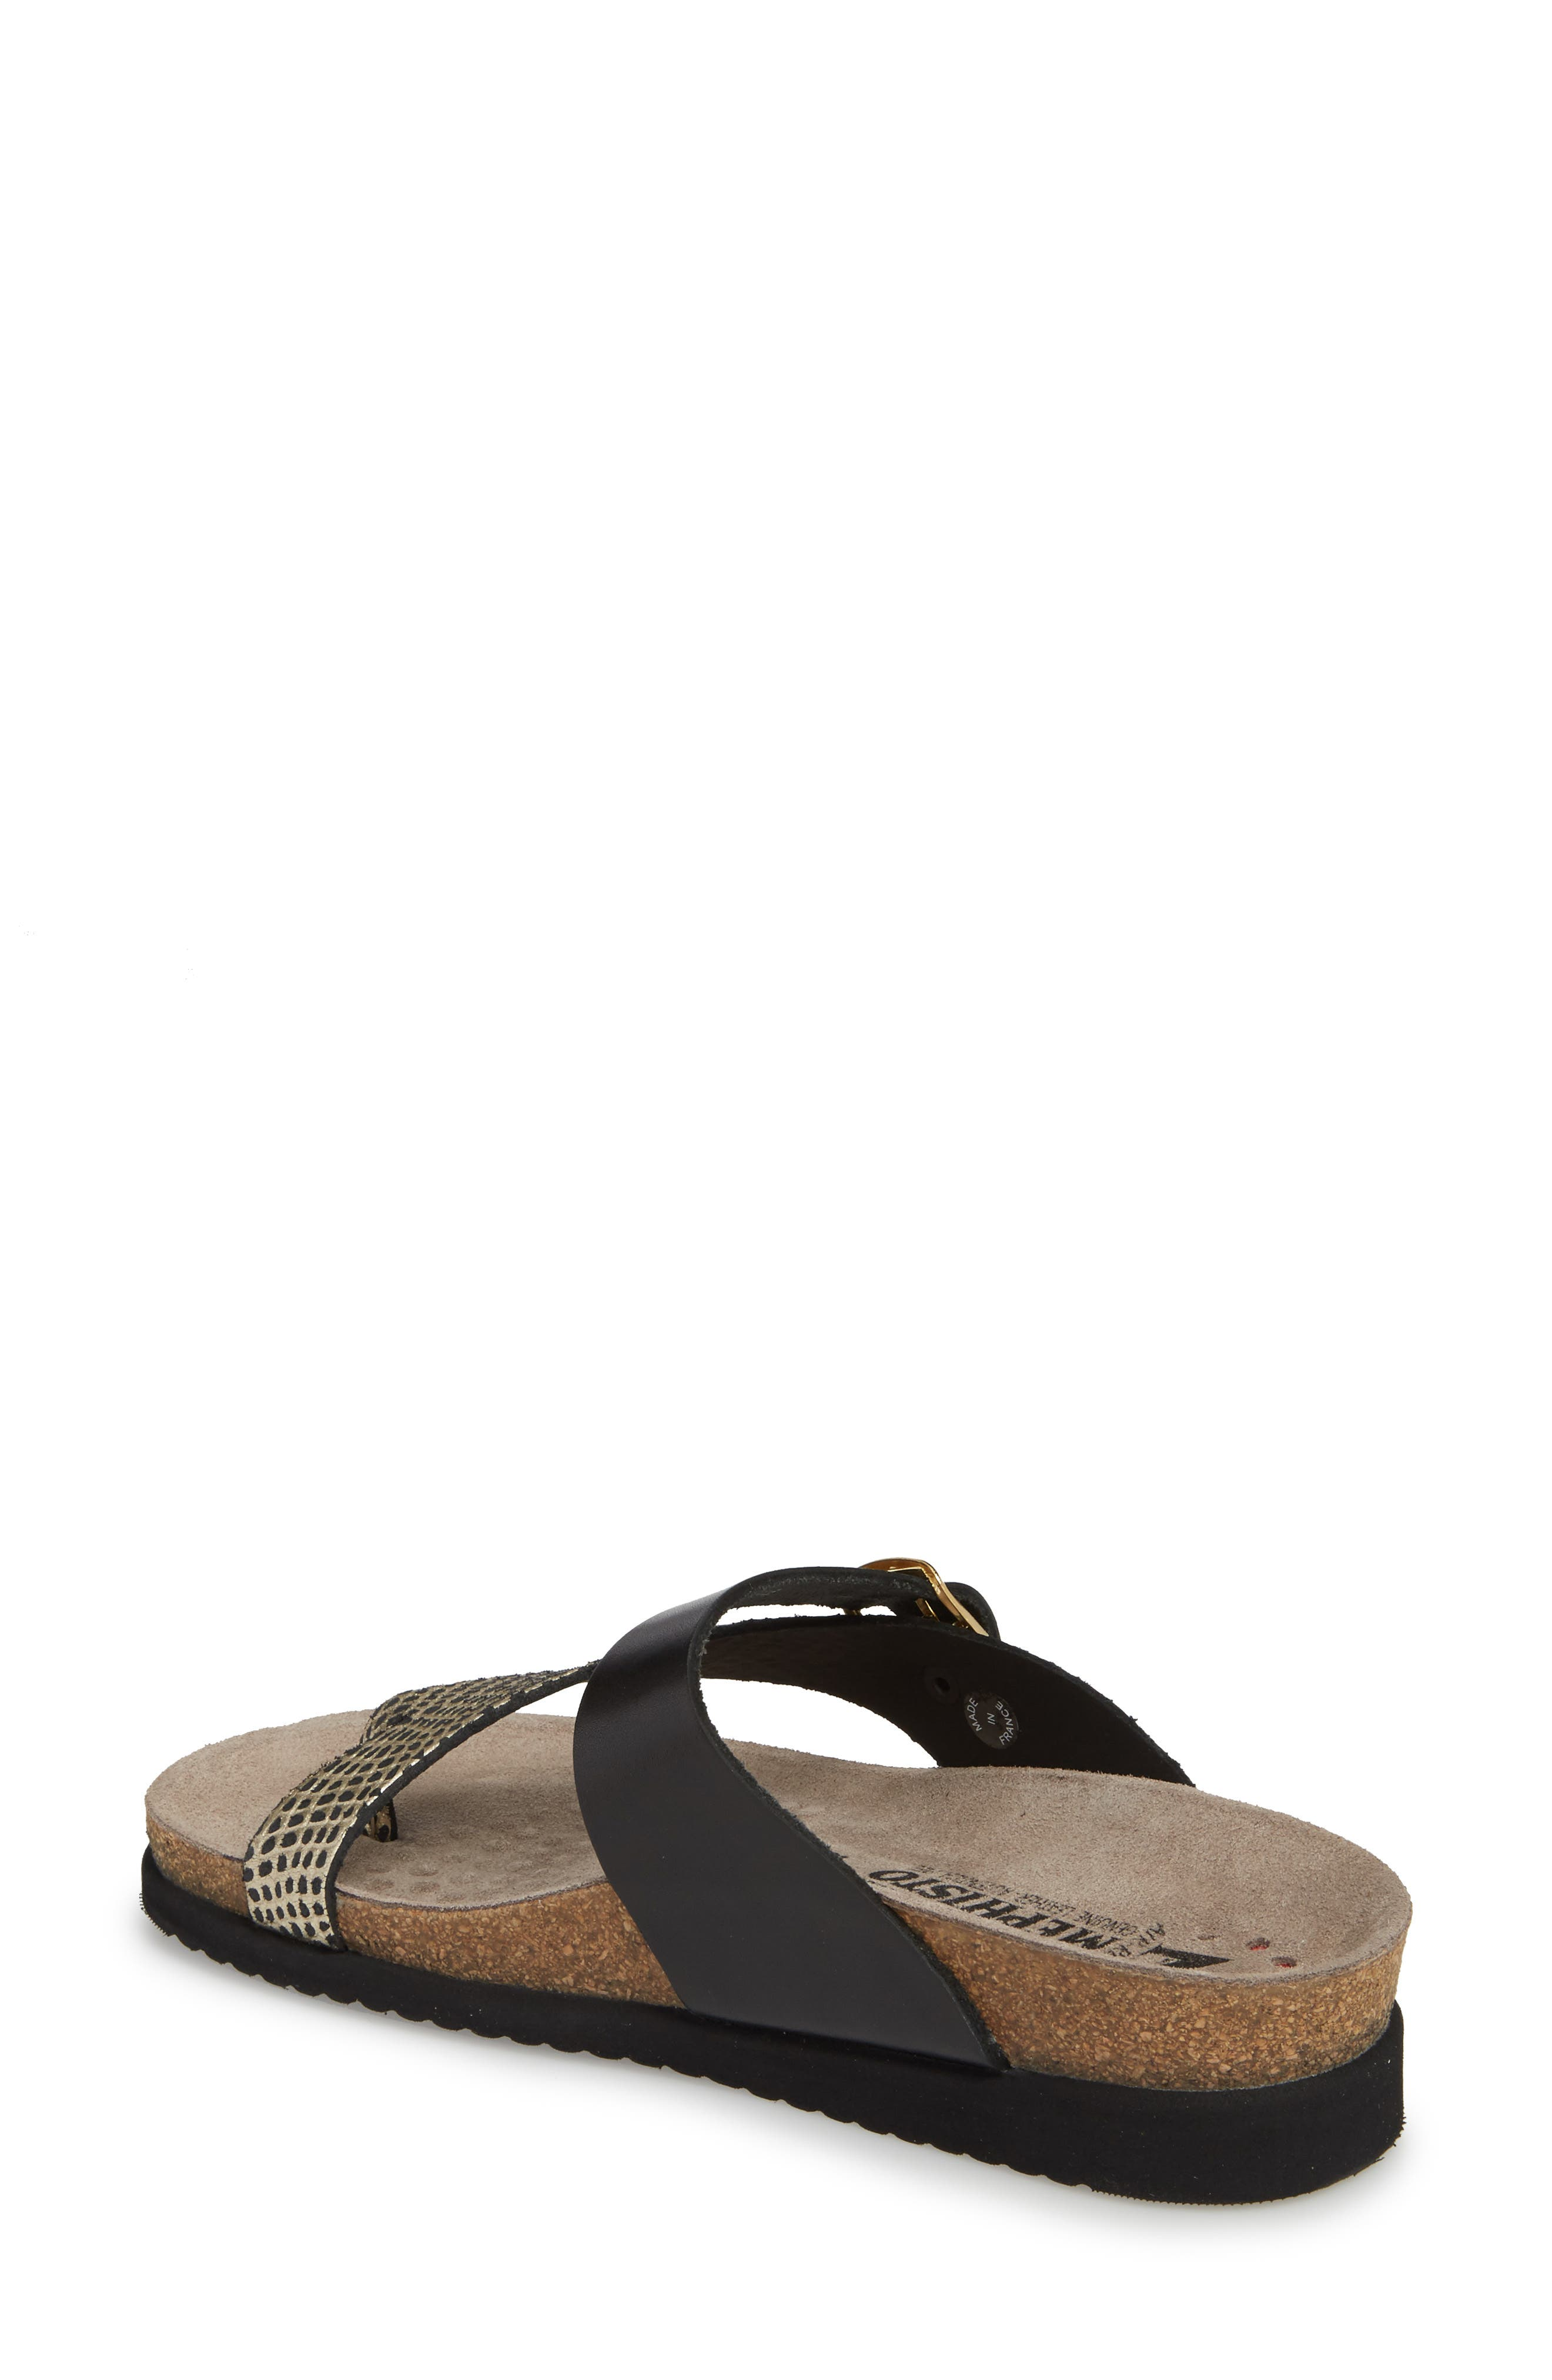 Helen Mix Sandal,                             Alternate thumbnail 2, color,                             BLACK/ GOLD